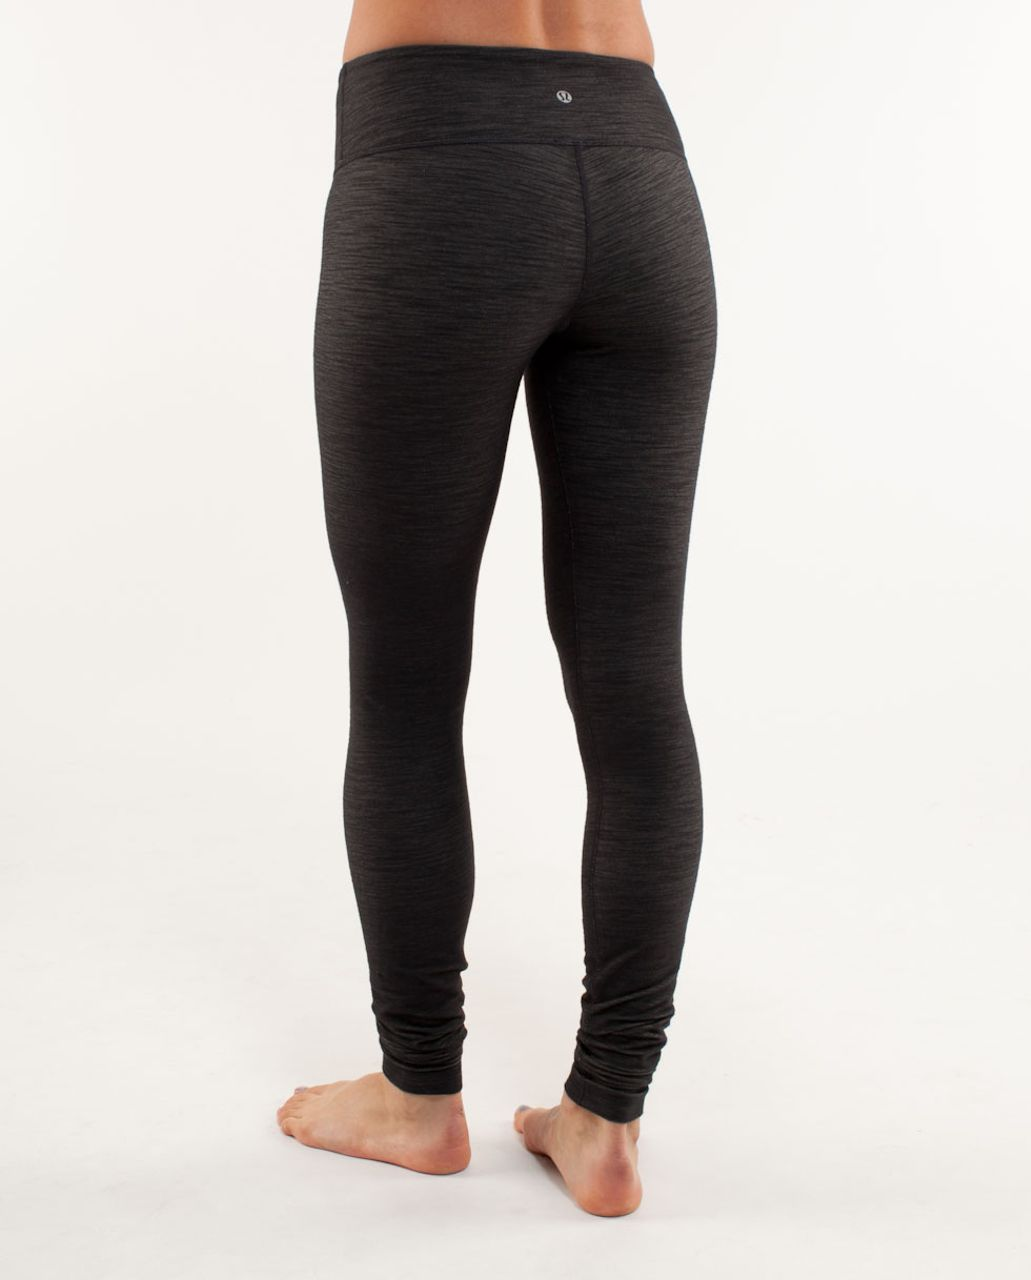 Lululemon Wunder Under Pant *Denim - Black Deep Coal Slub Denim